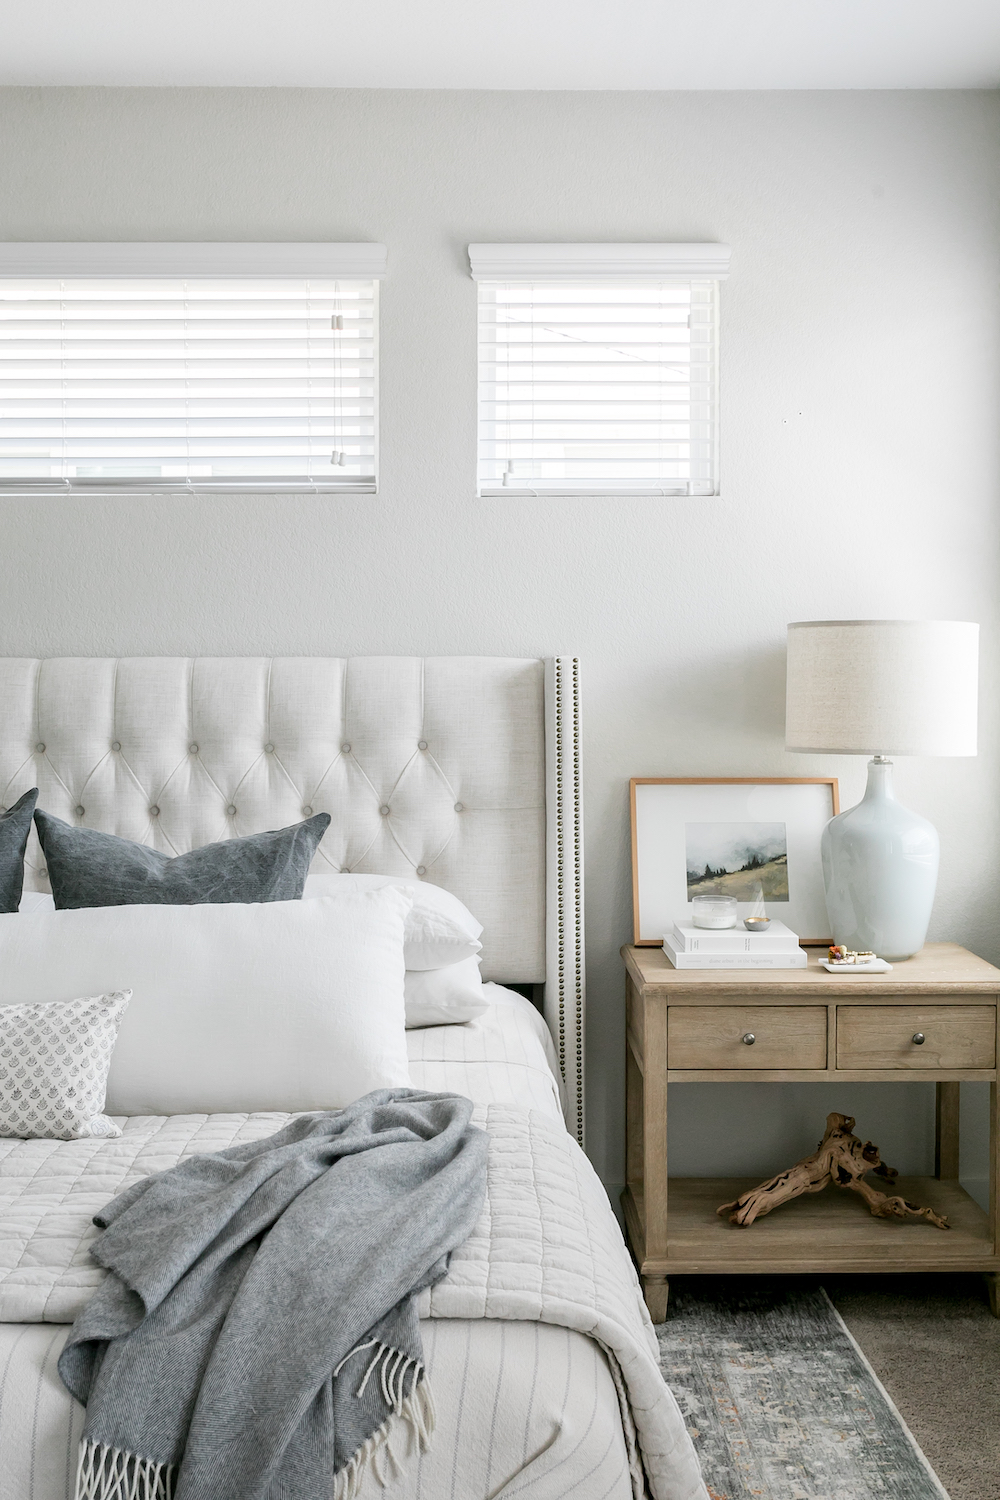 What You Should Be Cleaning in Your Apartment Every Week